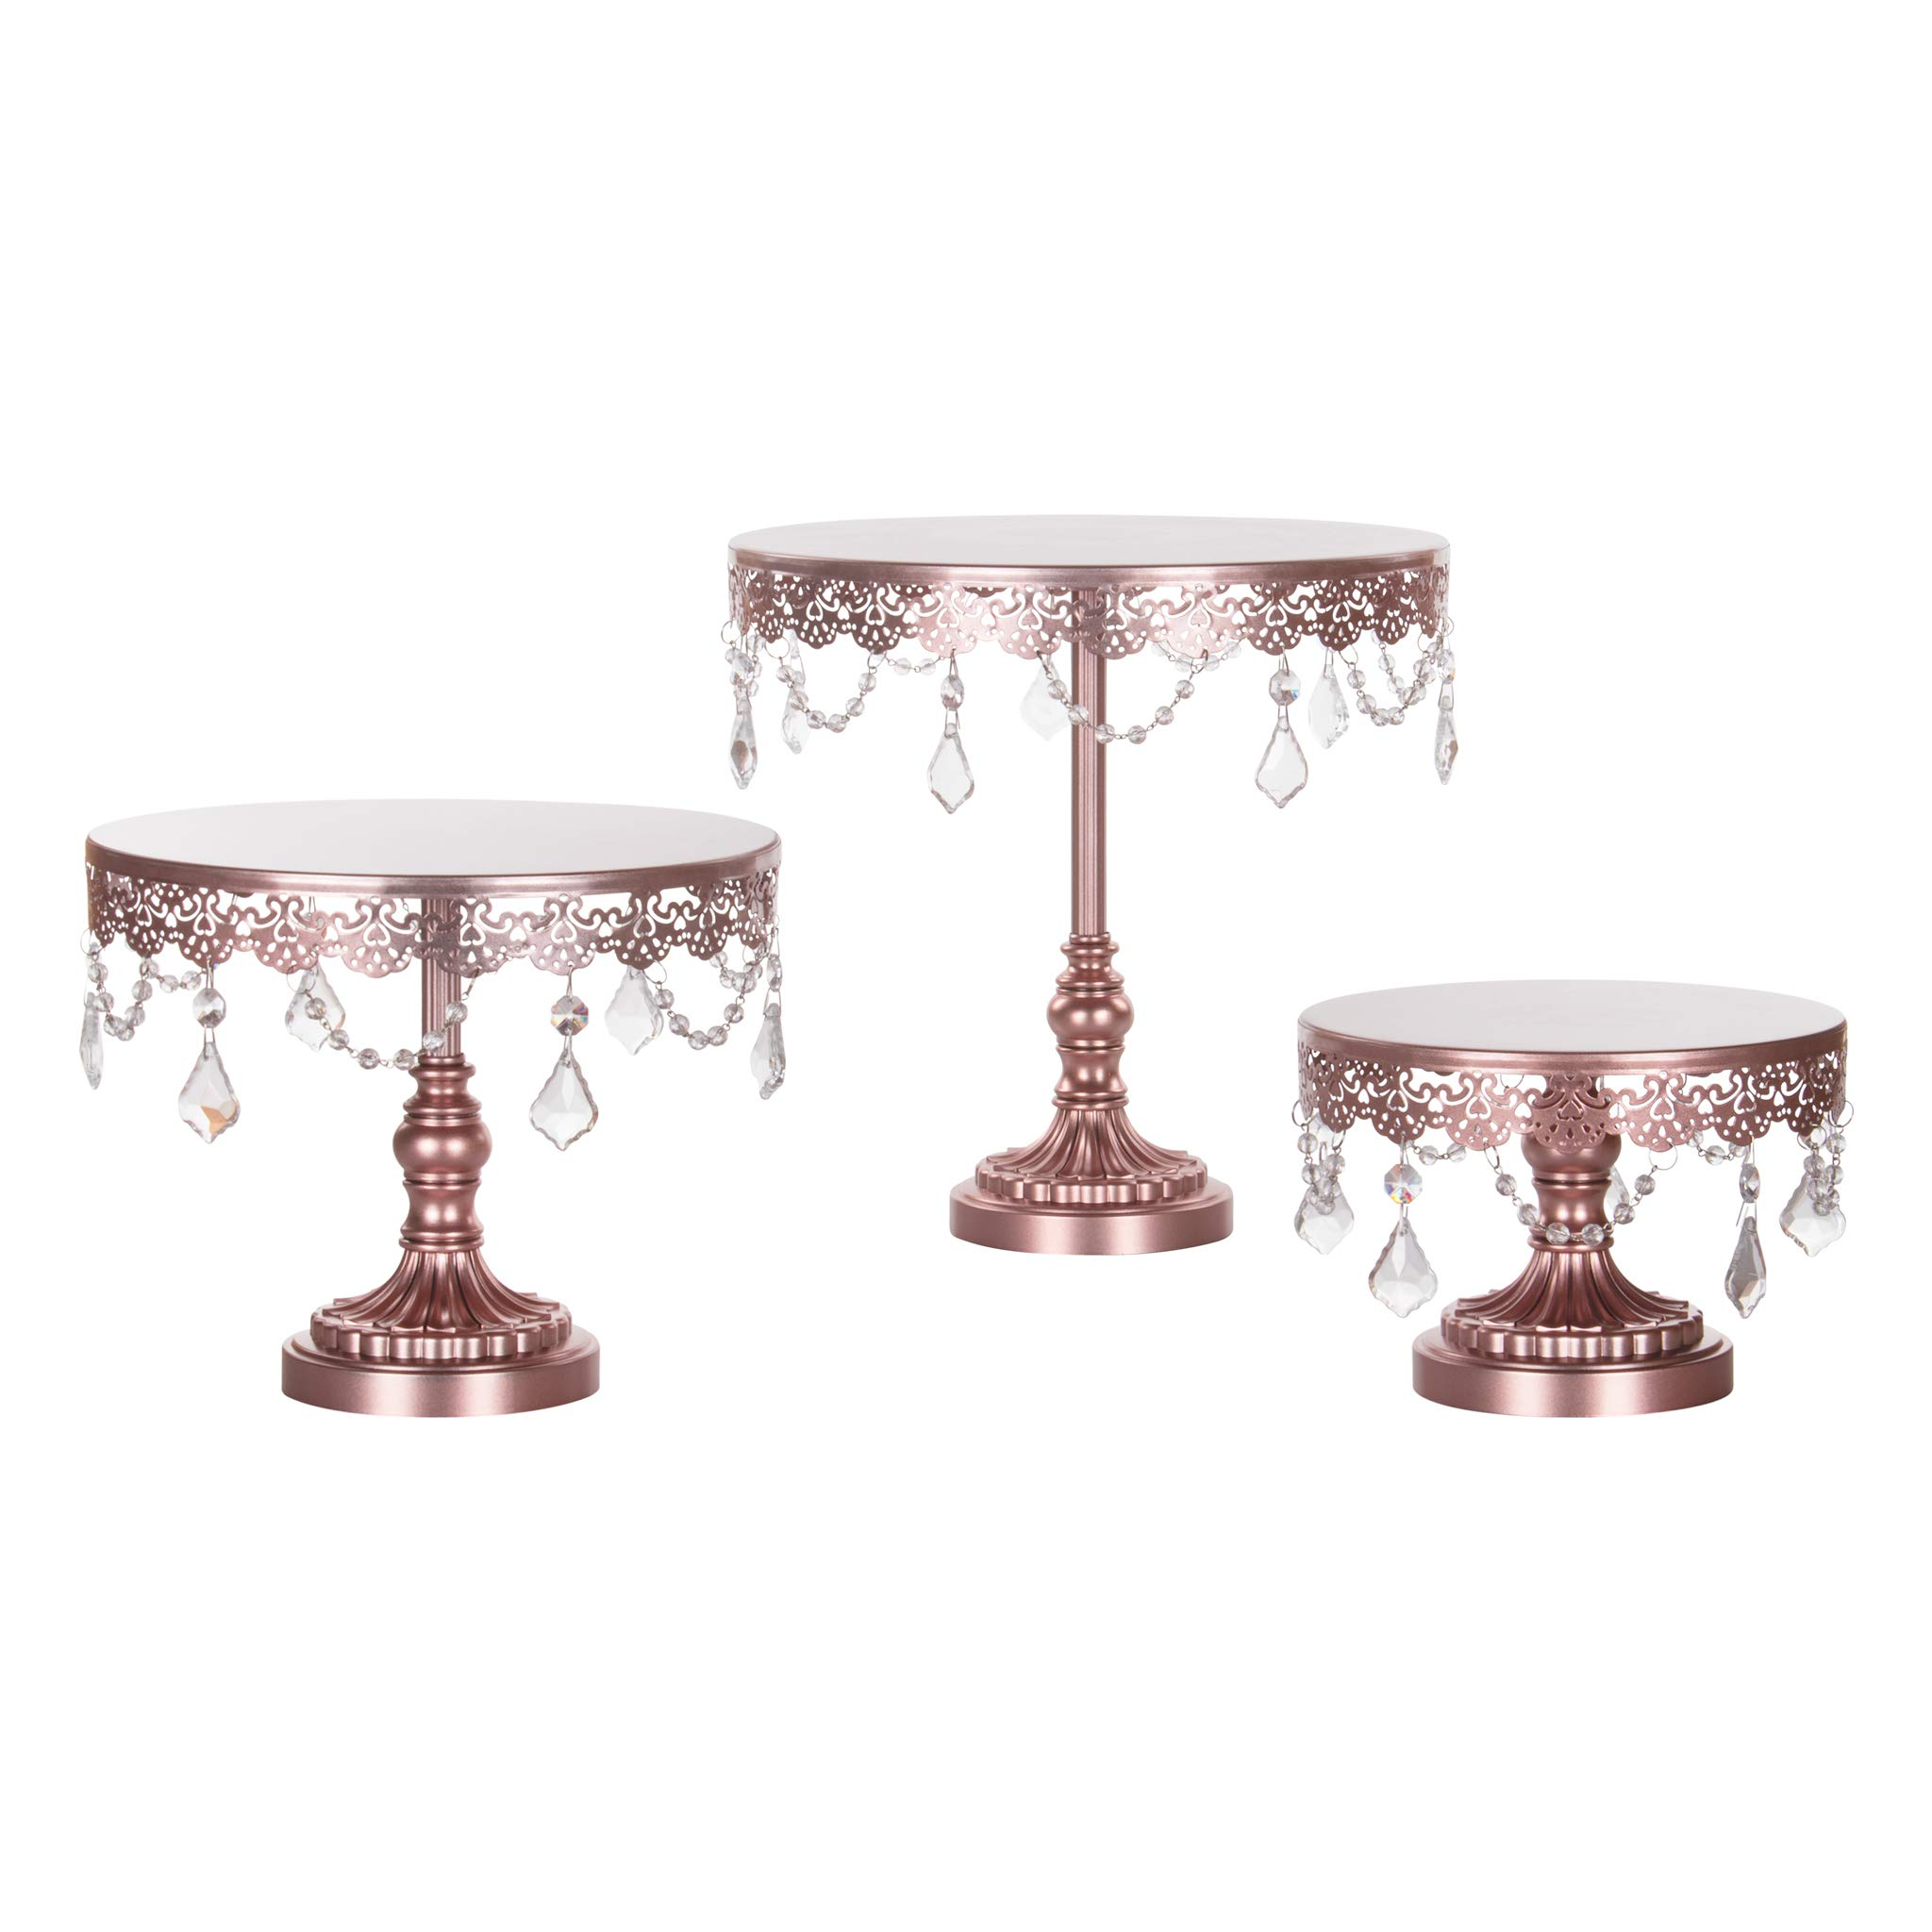 Sophia Cake Stand Set of 3, Round Metal Plate Dessert Cupcake Pedestal Wedding Party Display with Glass Crystals (Rose Gold)